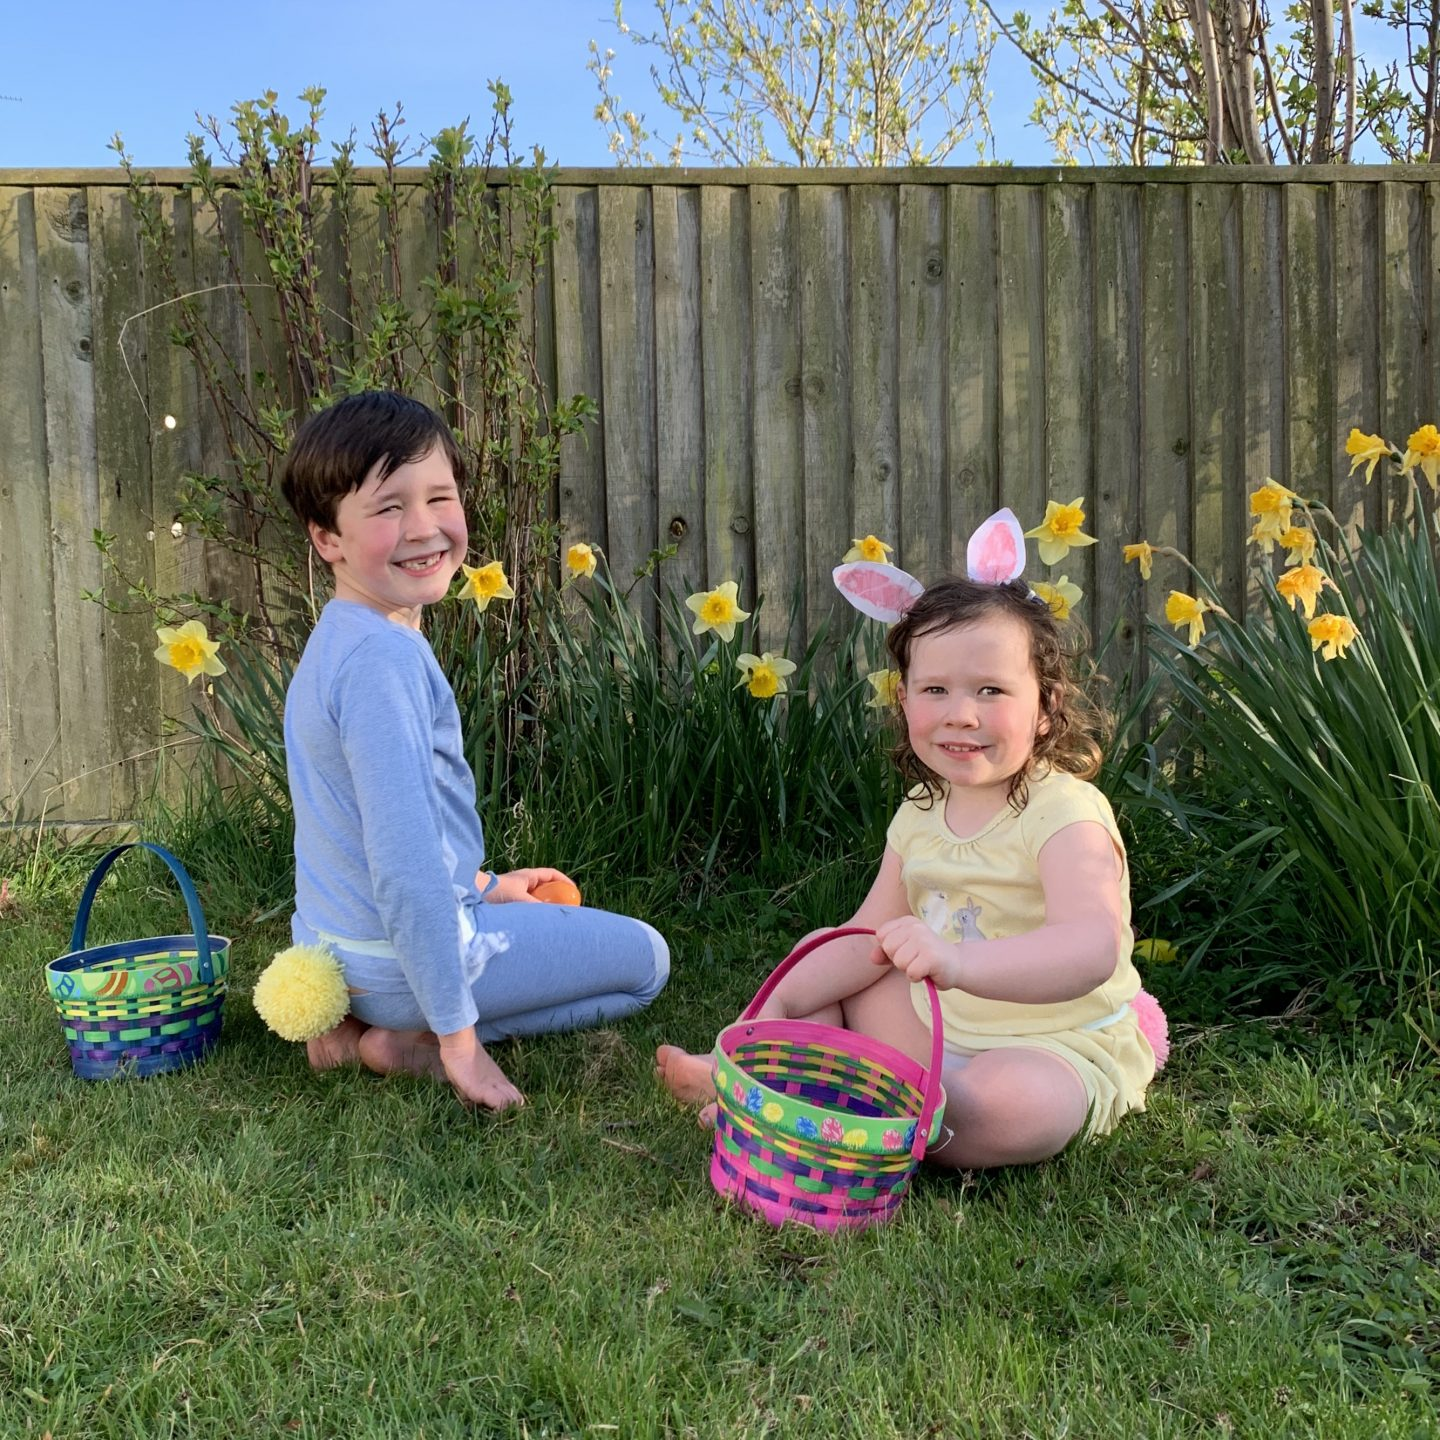 Two children collecting eggs with bunny tails and baskets